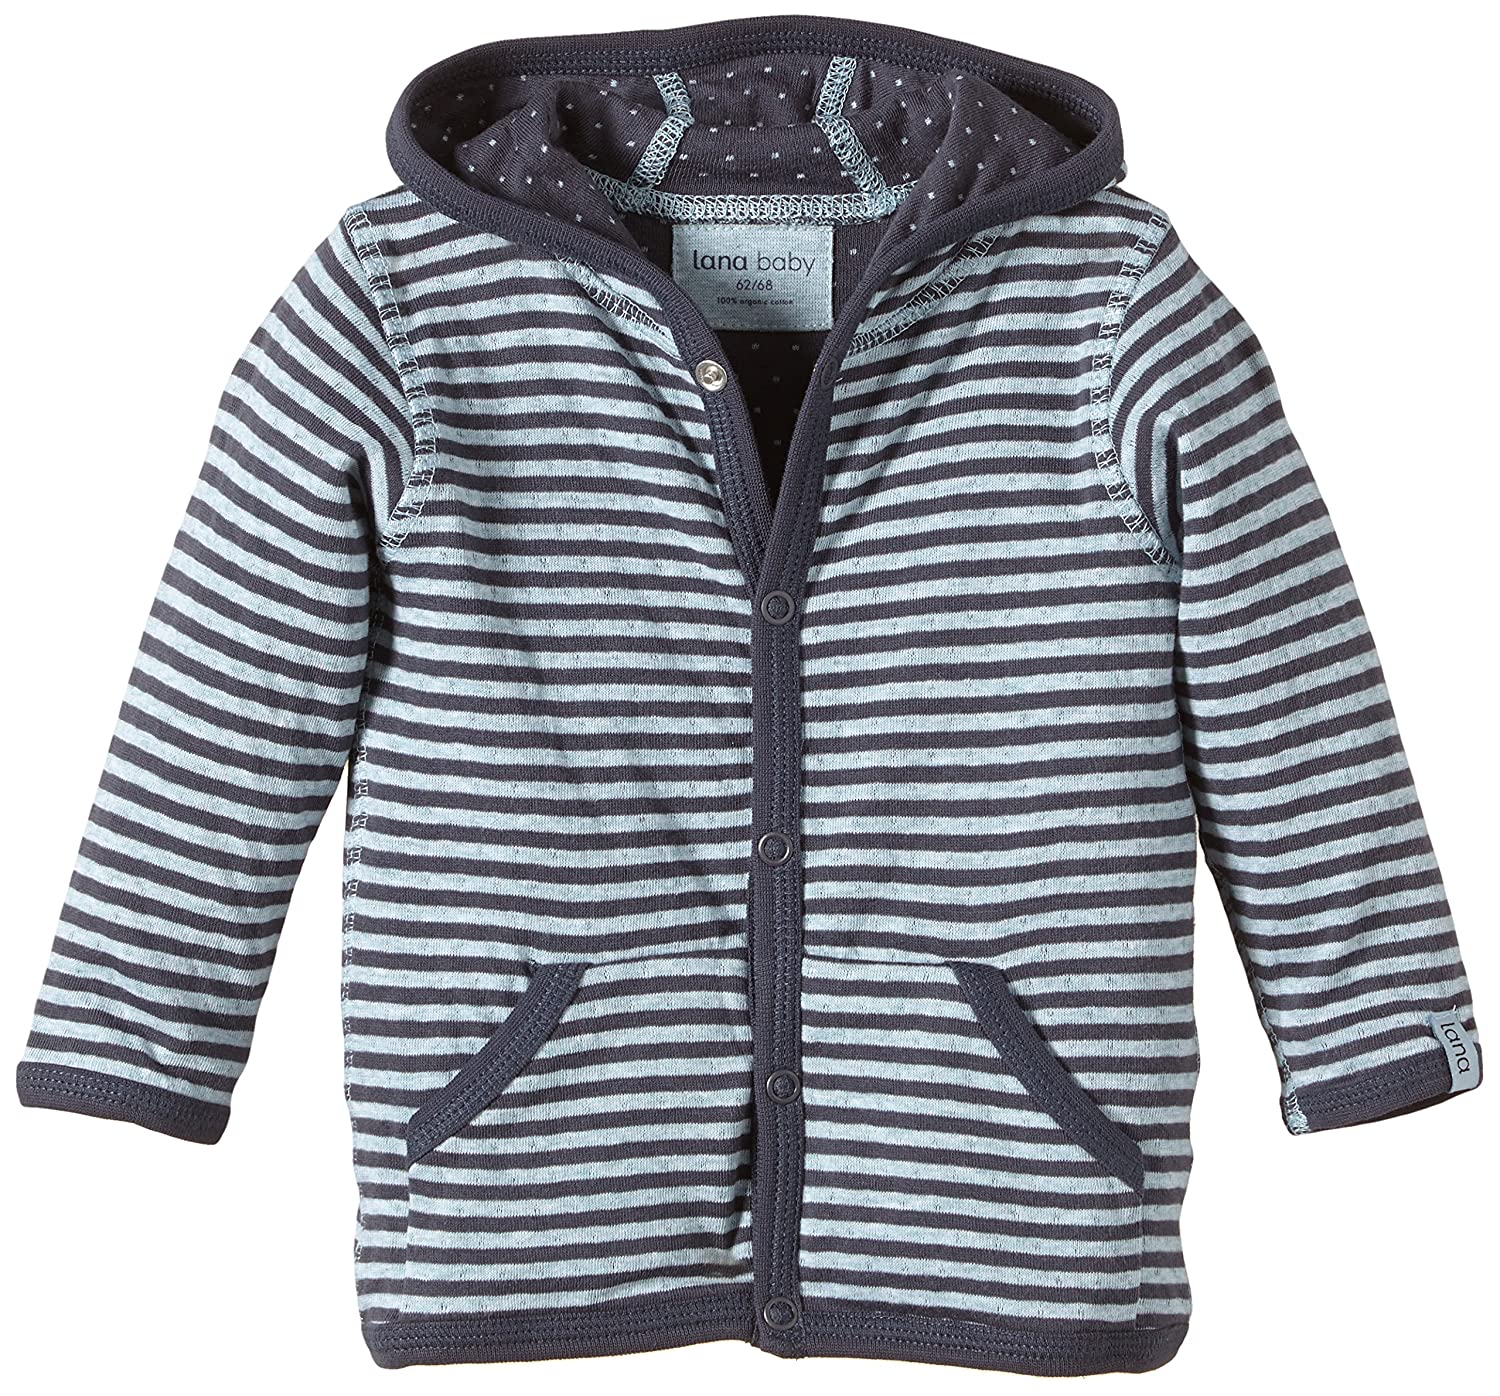 Lana natural wear Unisex - Baby Strickjacke Wendejacke Momo LANA natural wear GmbH 900 3002 5059